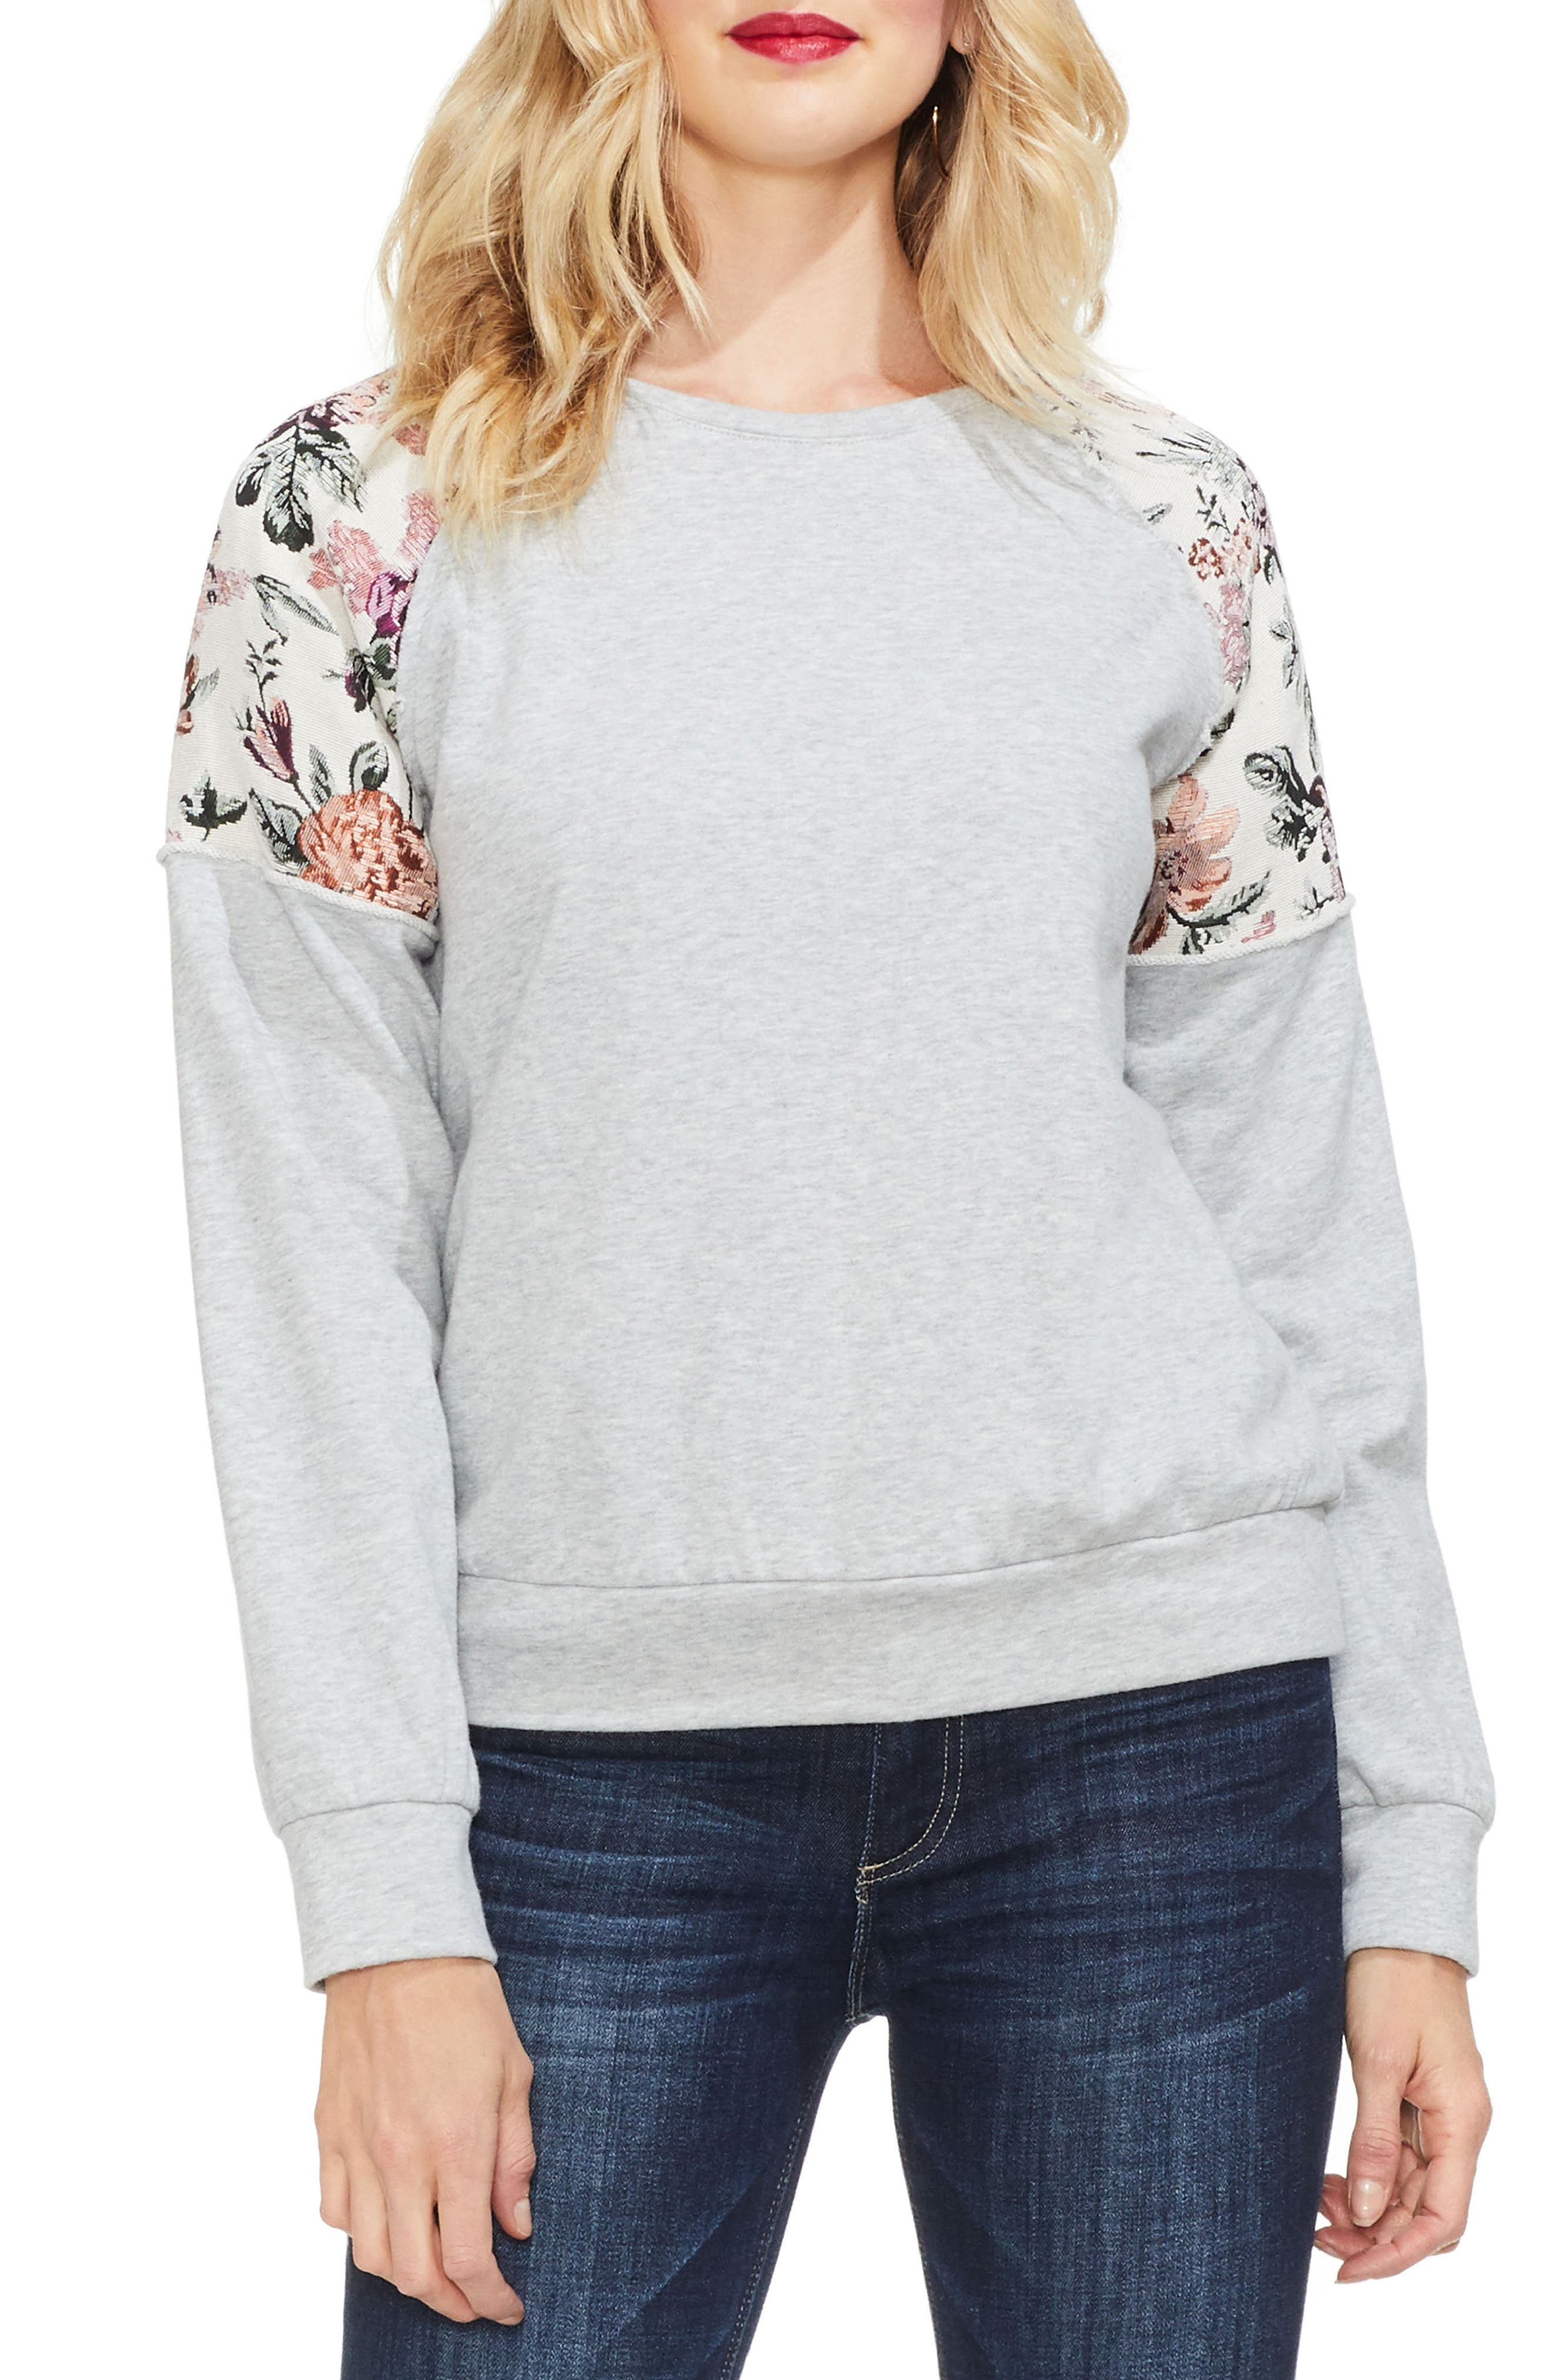 VINCE CAMUTO Drop-Shoulder Floral Sweater in Grey Heather